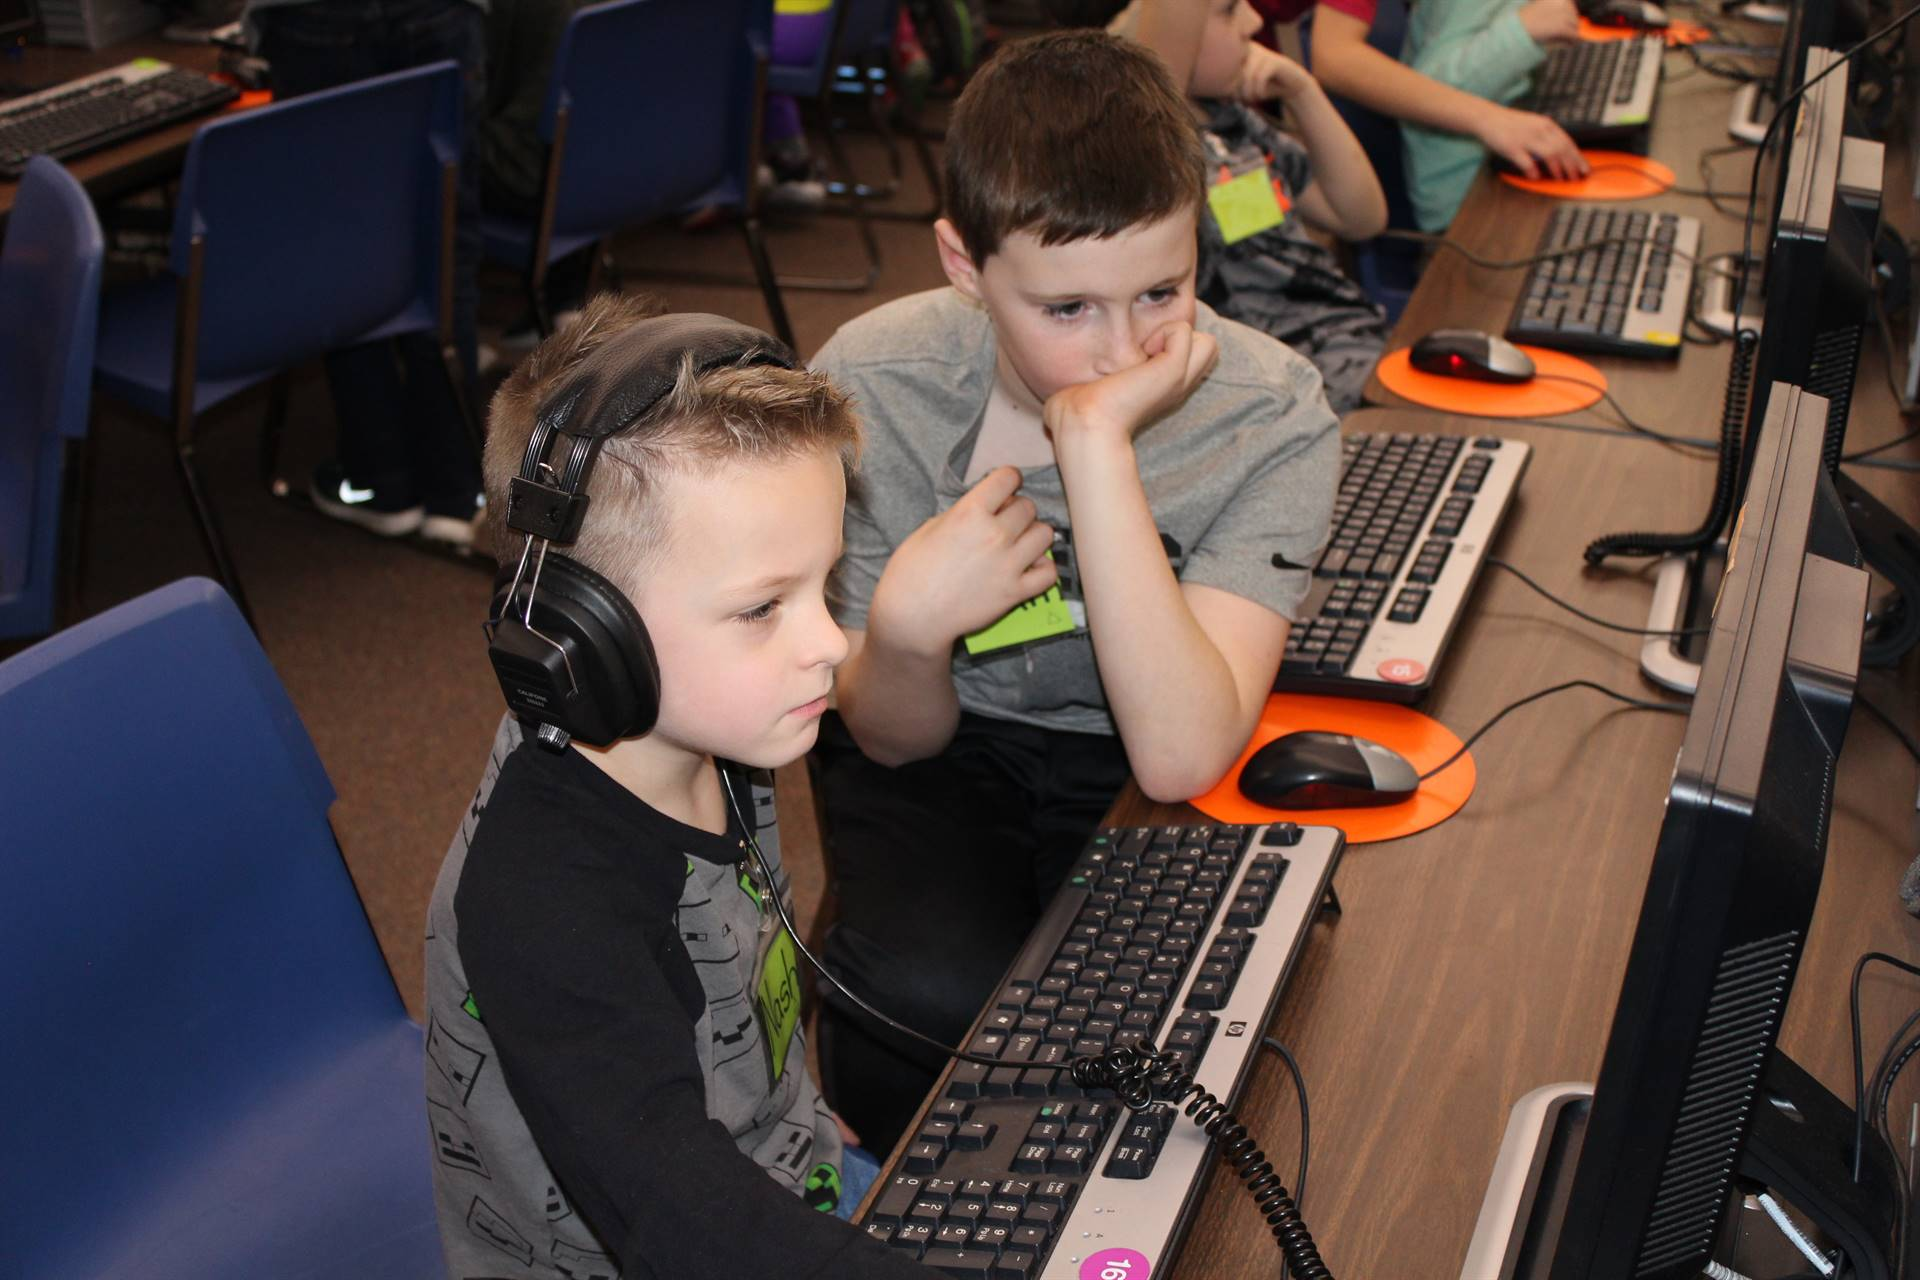 Students work in pairs in the Computer Lab